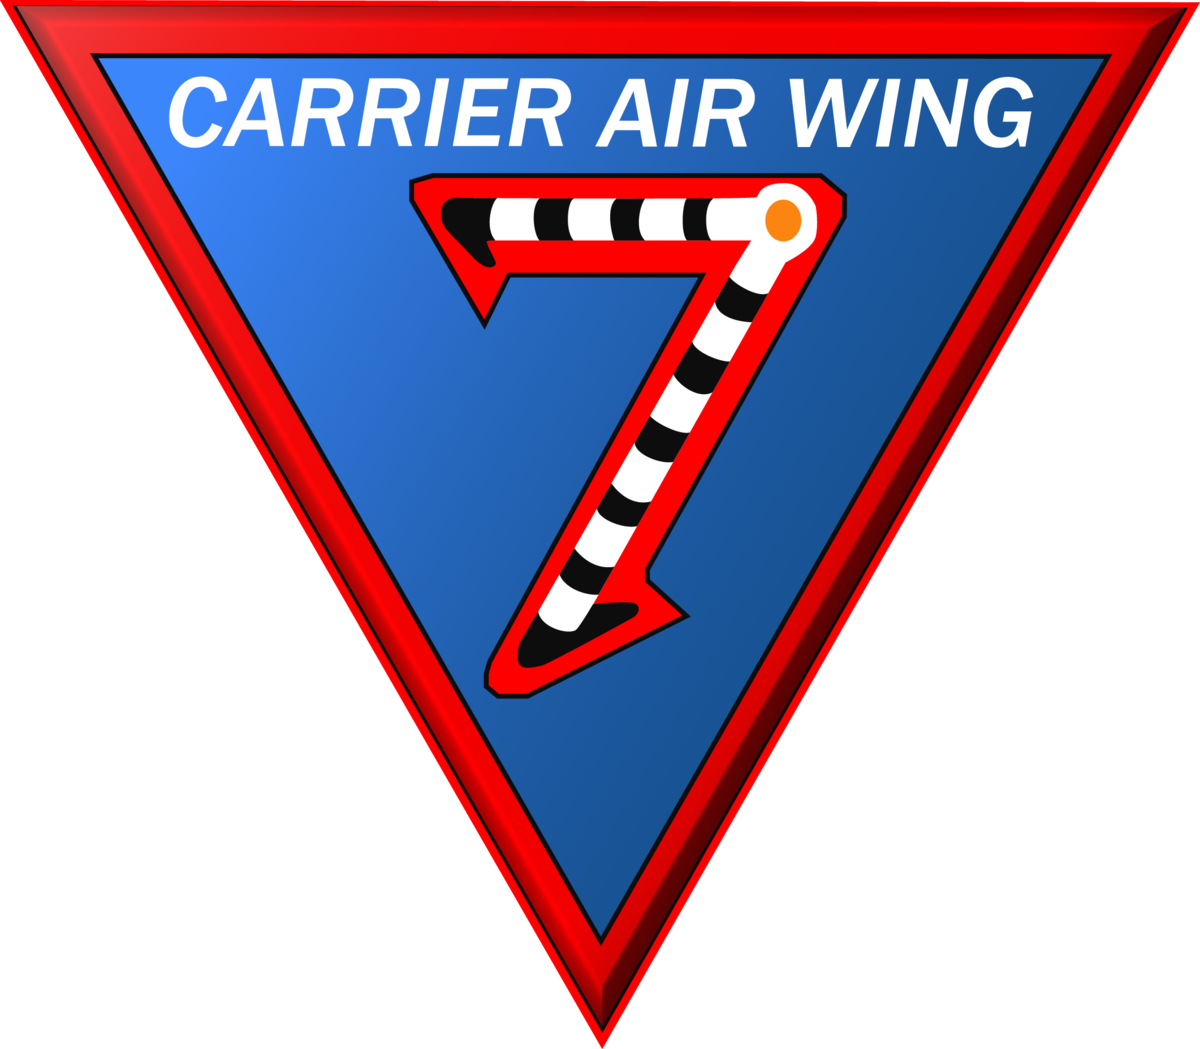 Carrier Air Wing Seven.